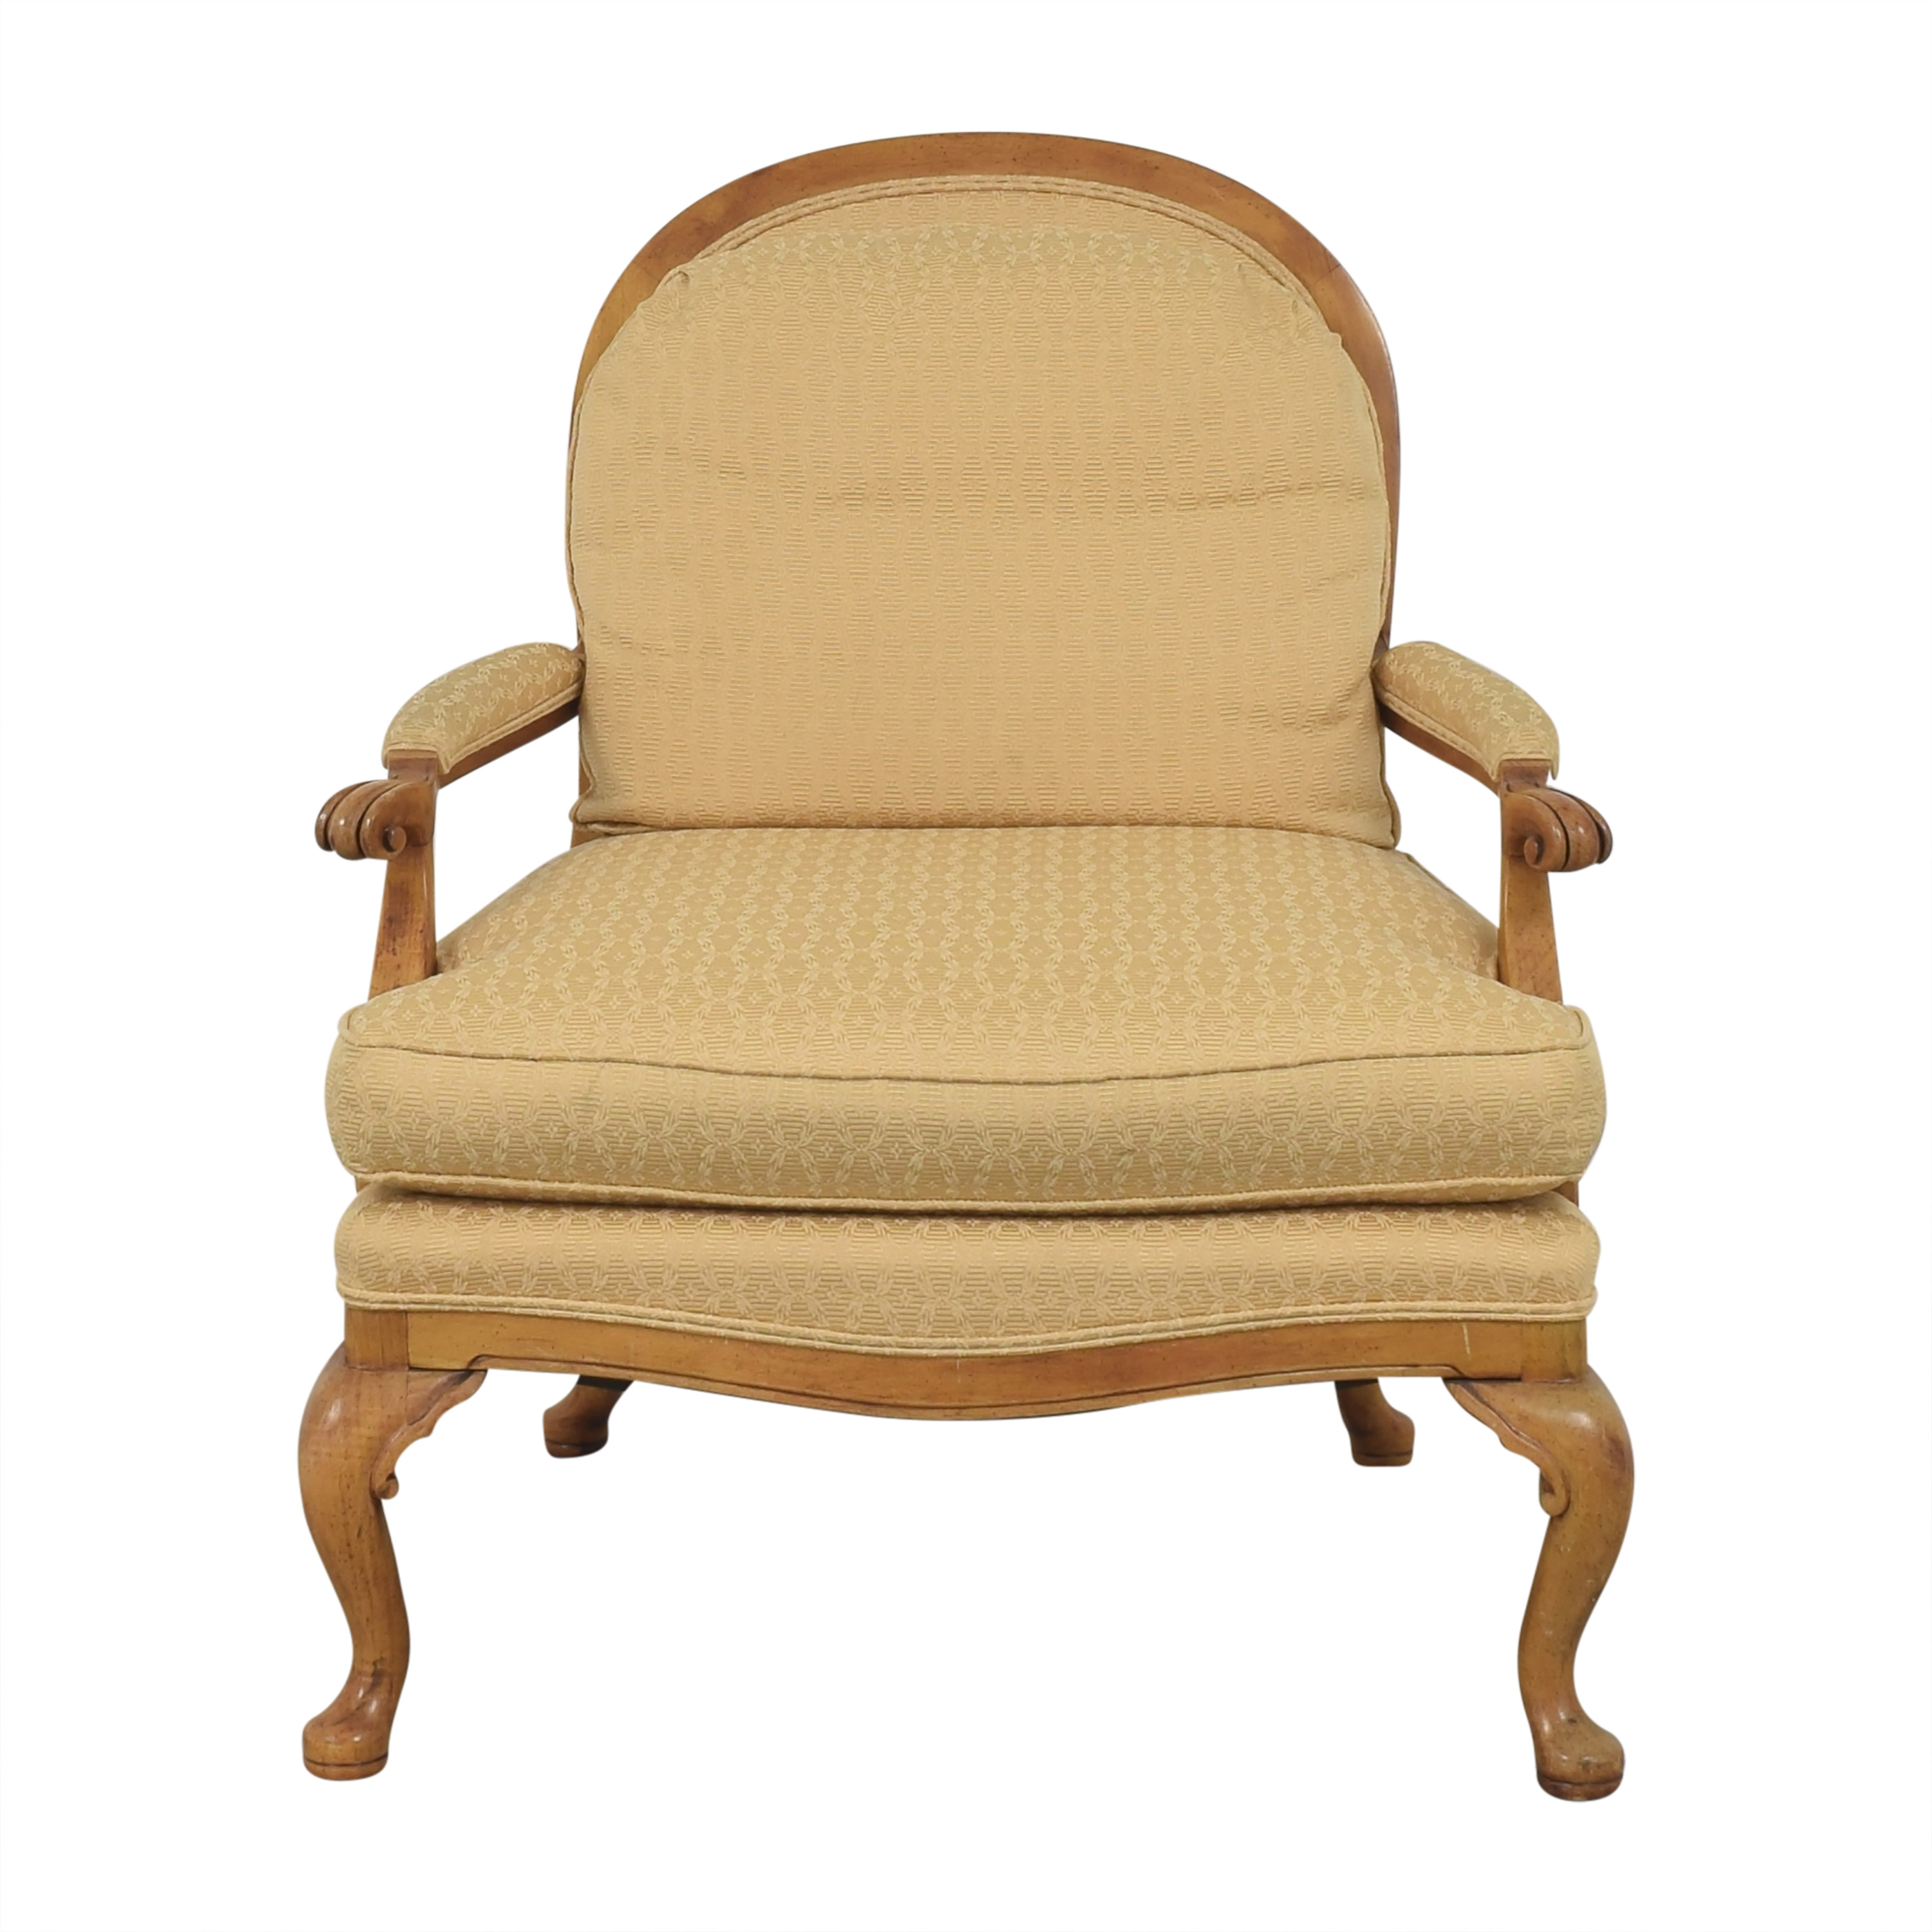 Highland House Furniture Highland House Accent Fauteuil Chair for sale